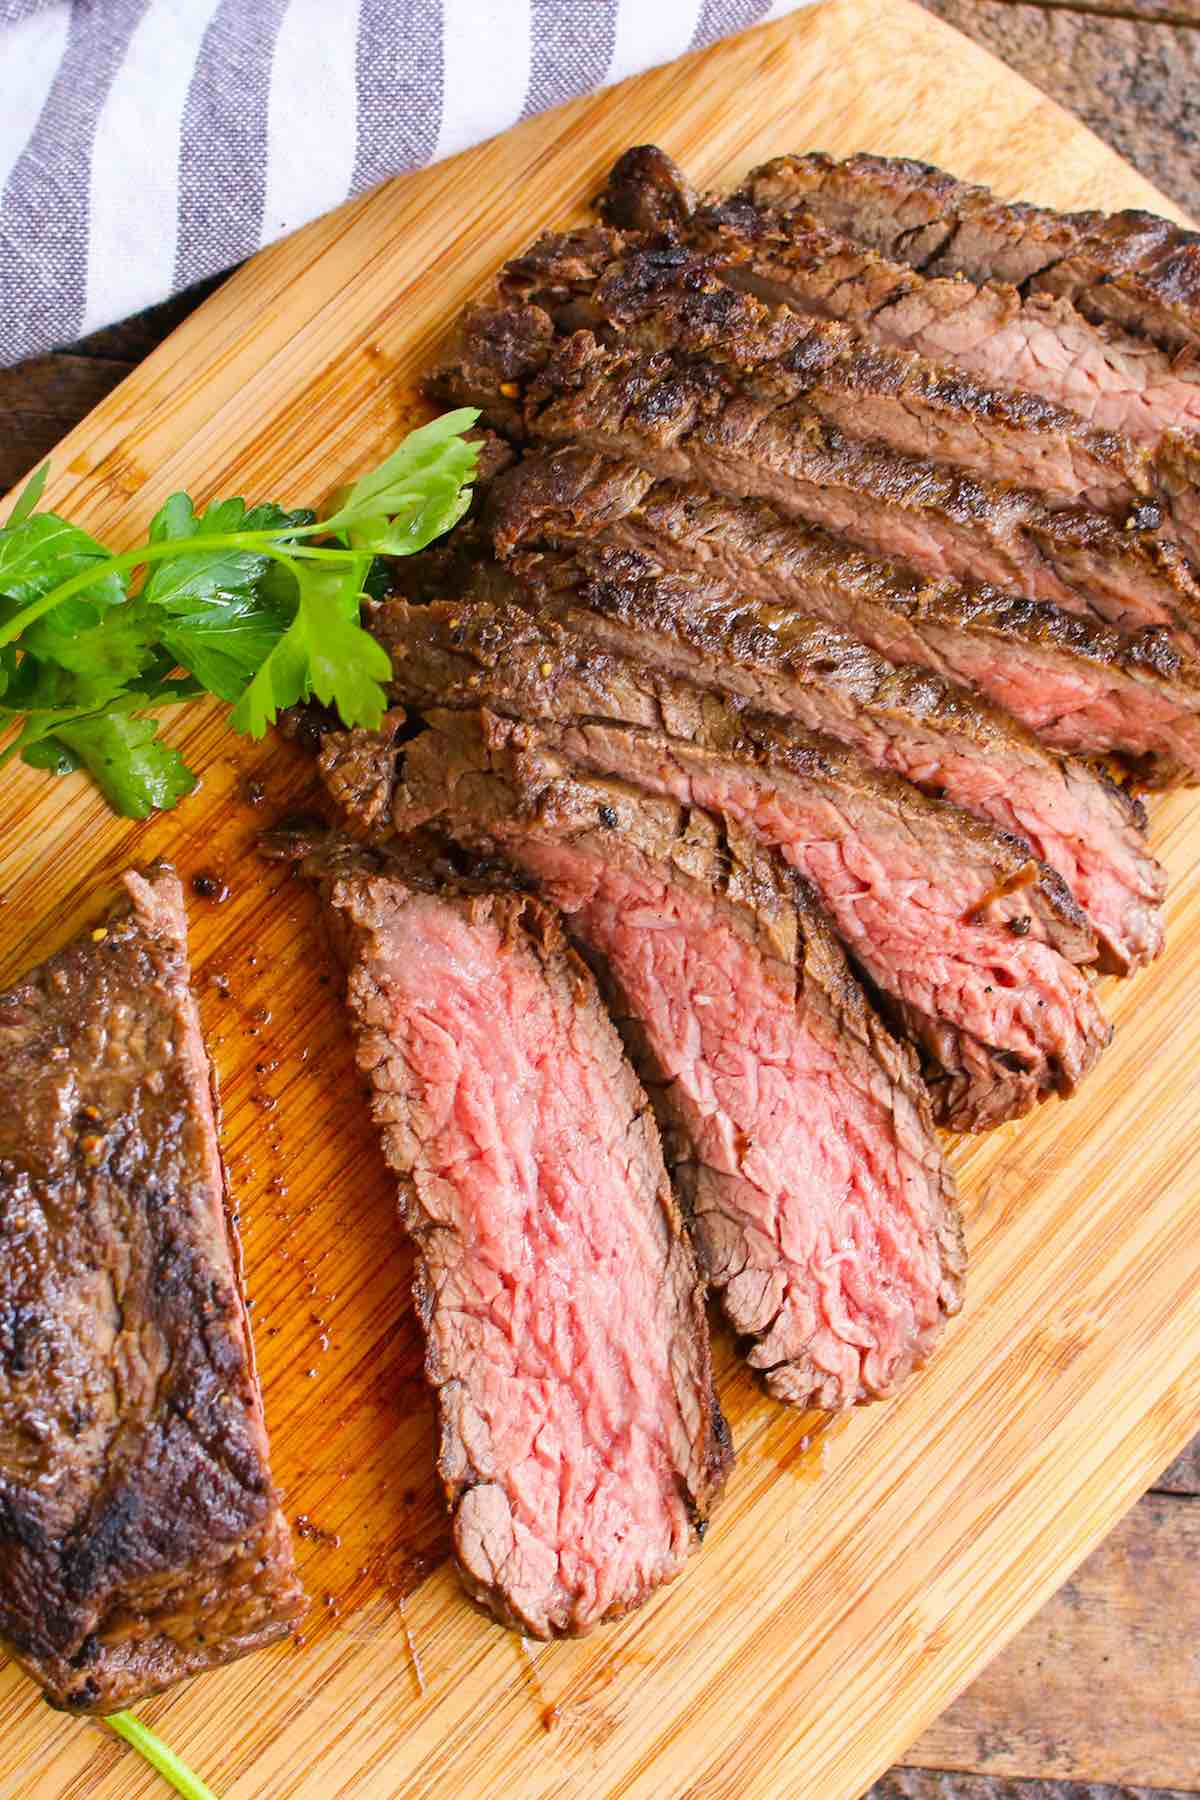 Sirloin bavette steak cooked medium and sliced on a carving board showing a beautiful pink color